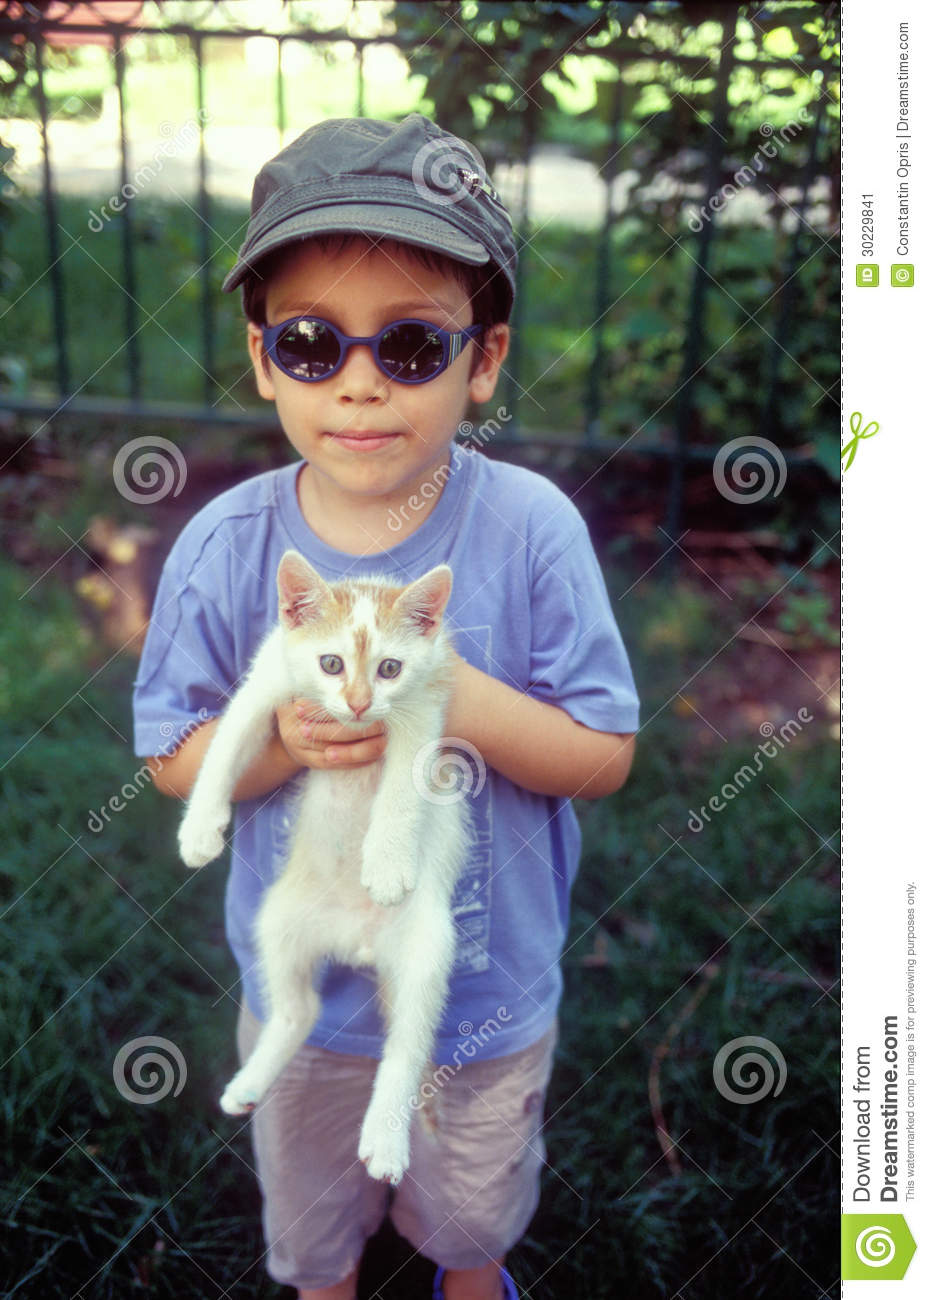 Emo Girl Wallpaper Free Download Boy Holding Cat Stock Image Image 30229841